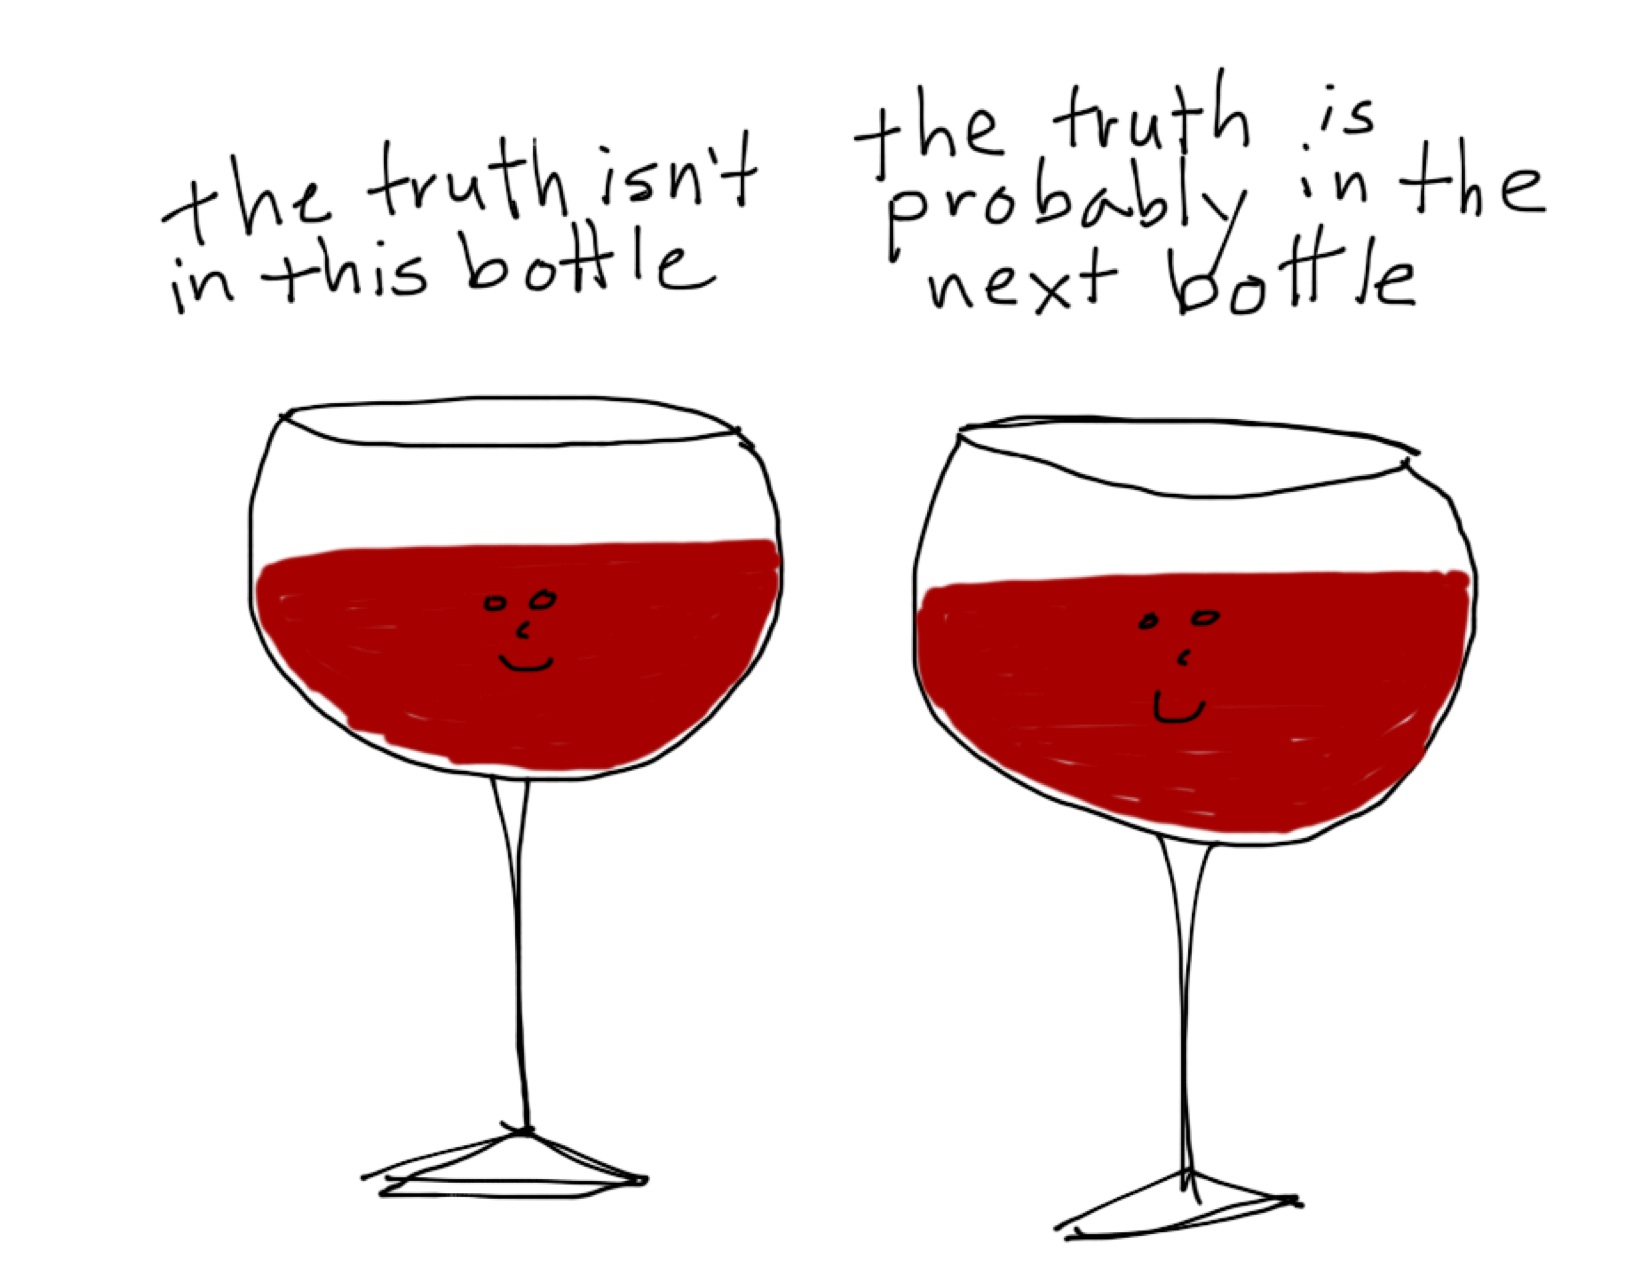 http://www.letitwine.com/wp-content/uploads/2015/09/wine-truth-isnt-in-this-bottle.jpg